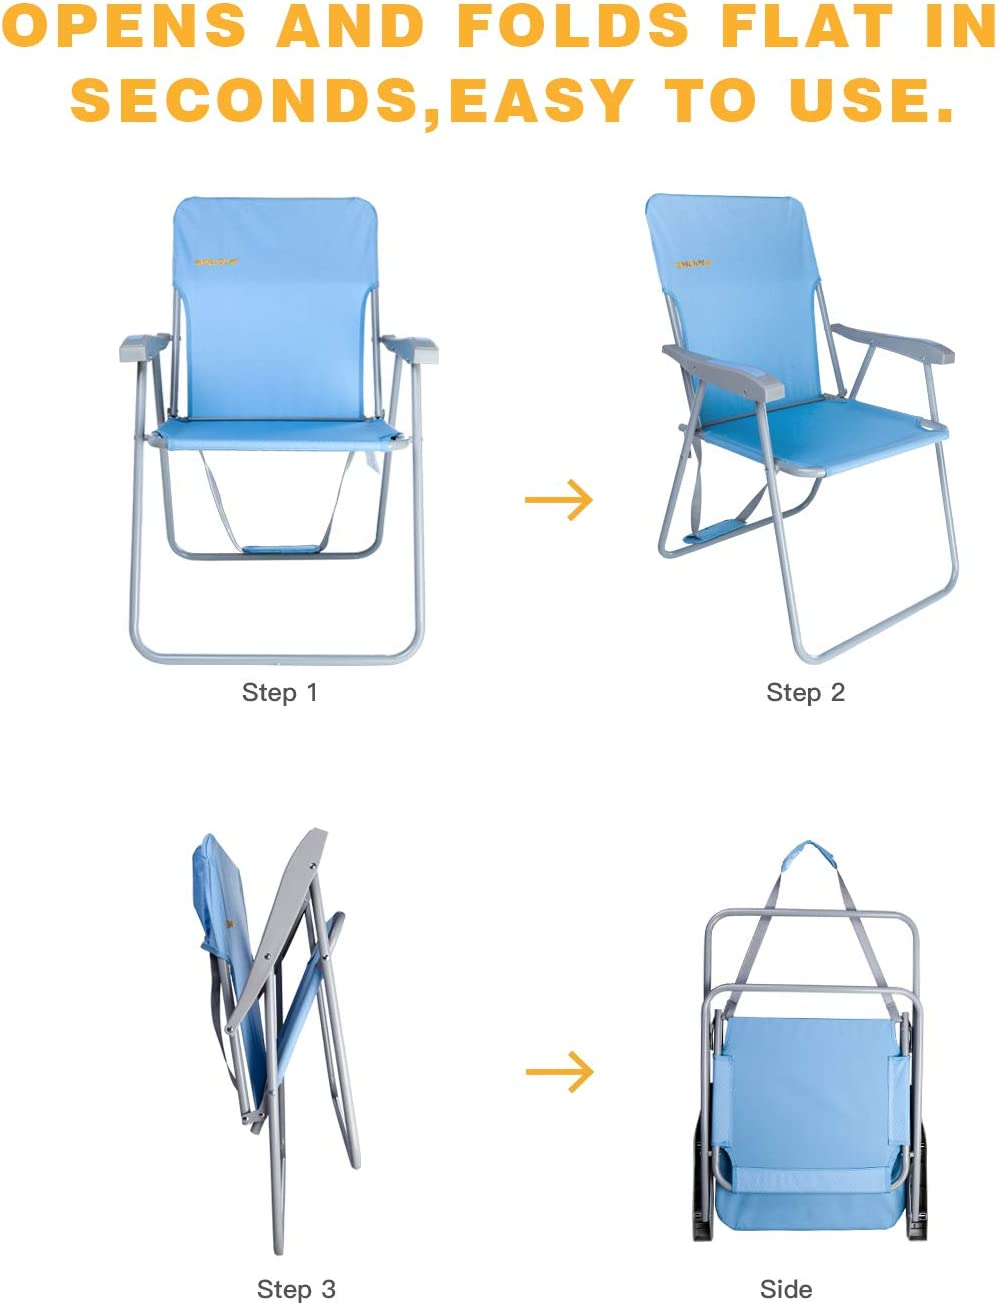 #WEJOY 2-Pack High Back Seat Outdoor Lawn Concert Beach Folding Chair with Hard Arms Shoulder Strap Pocket for Adults Camping Festival Sand Supports 300 lbs